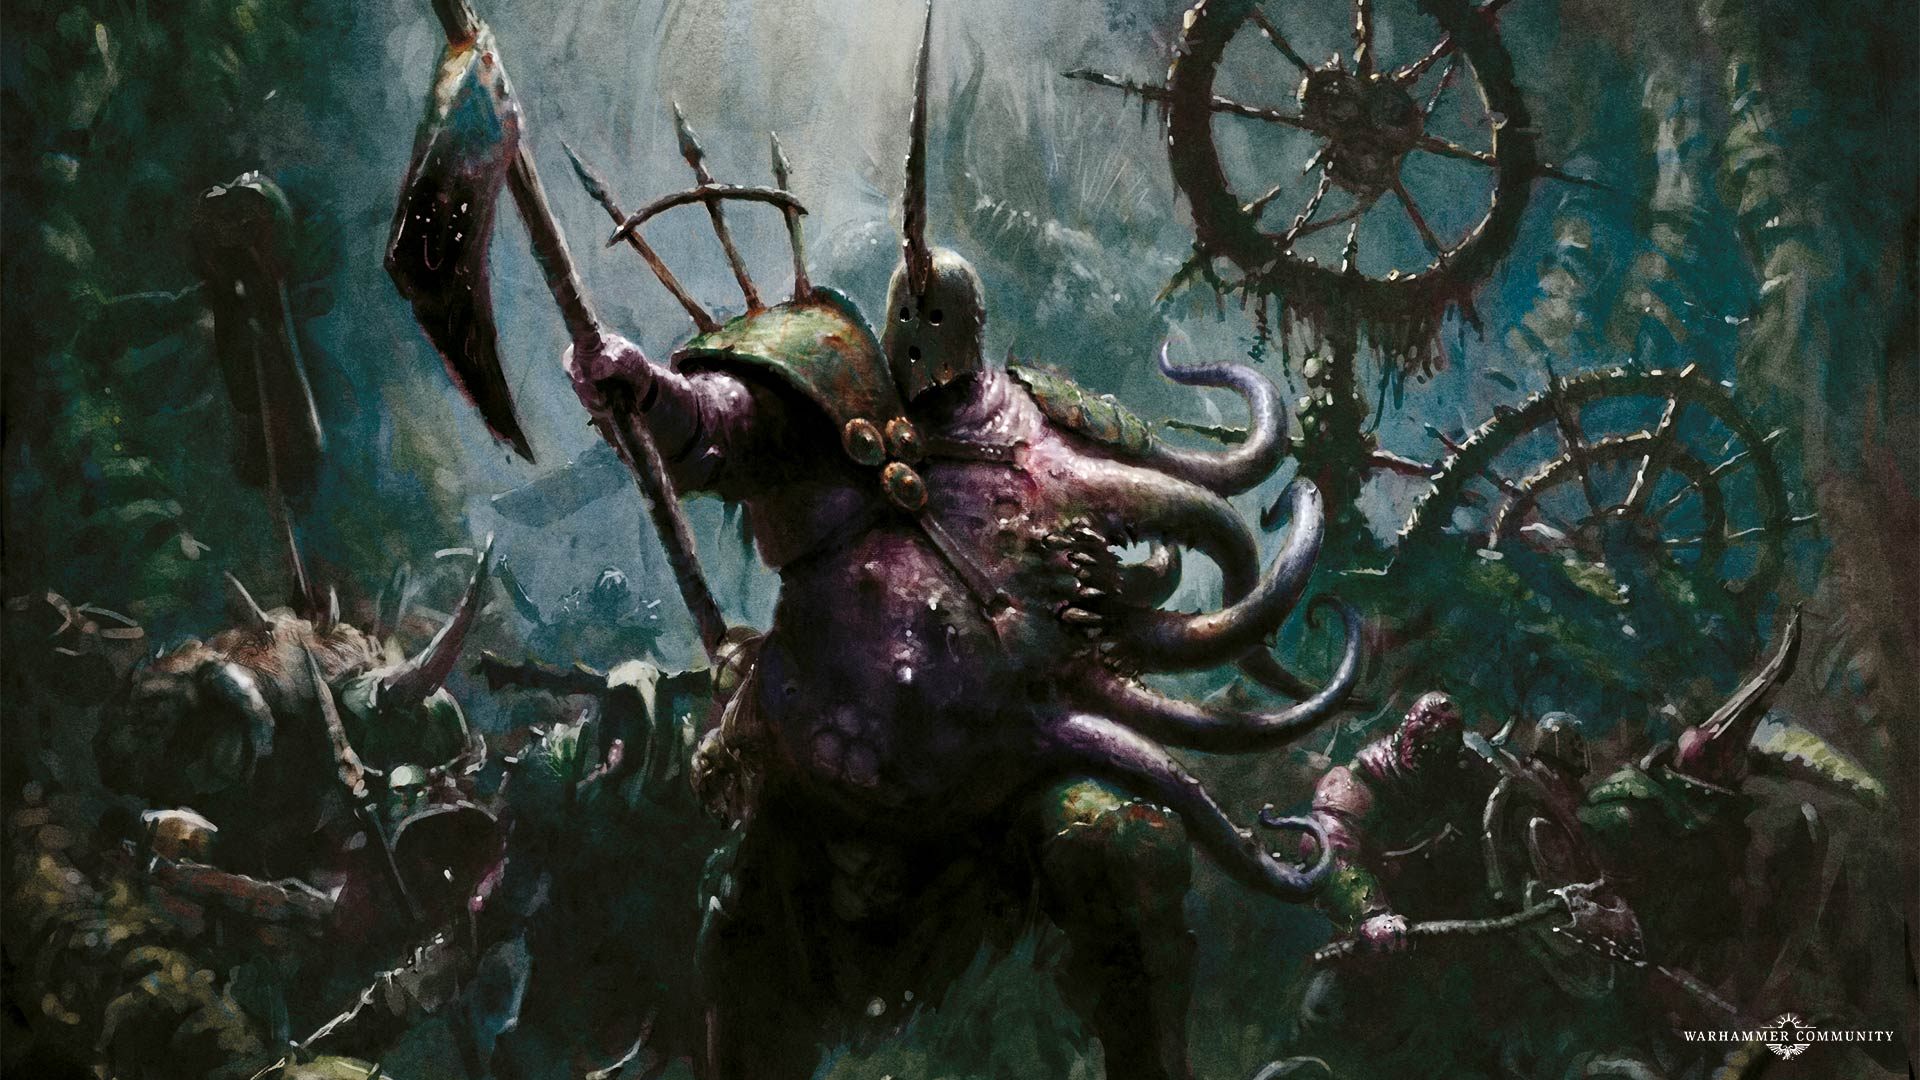 Fourth Day Of Nurgle The Lord Of Blights With New Wallpaper My